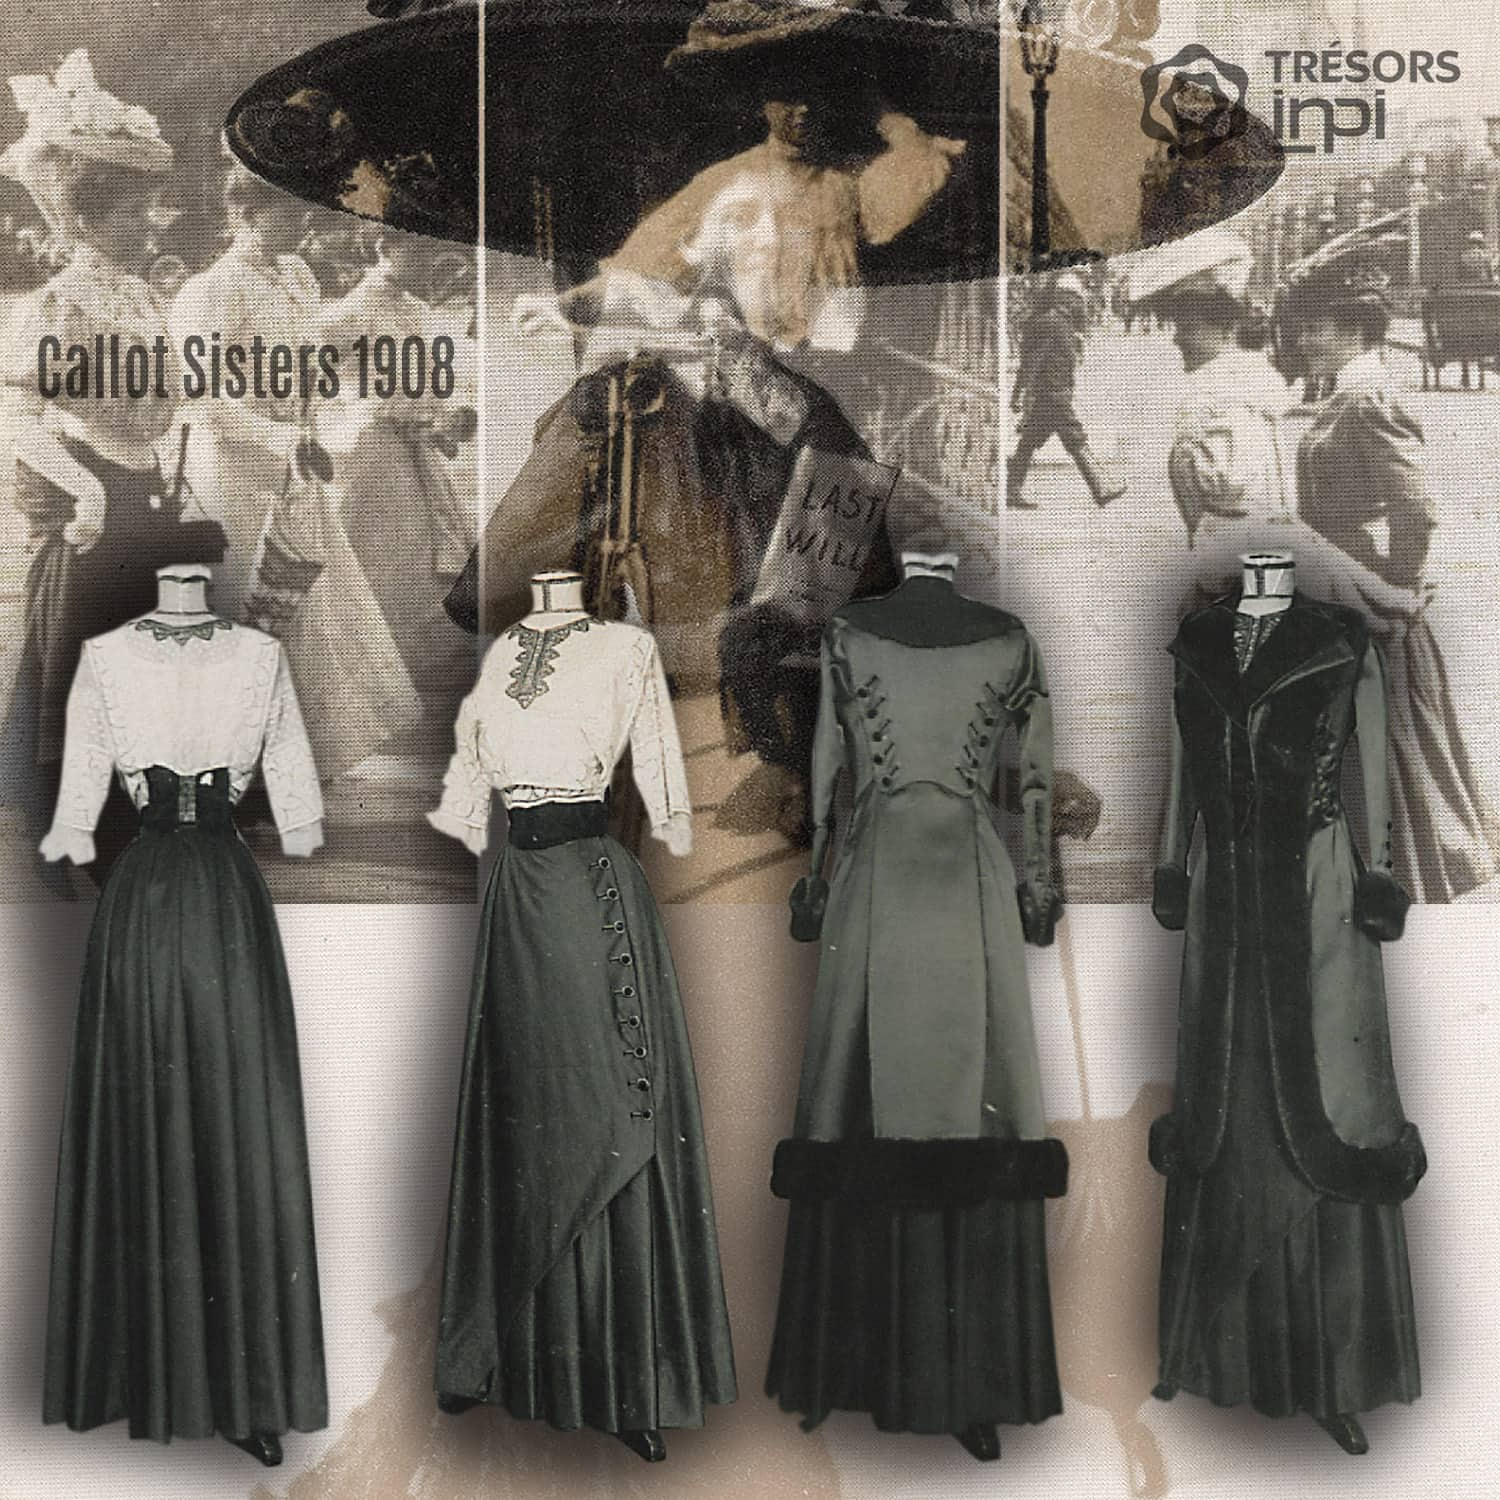 Callot Sisters 1908 Prince Consort skirts invention - INPI archives